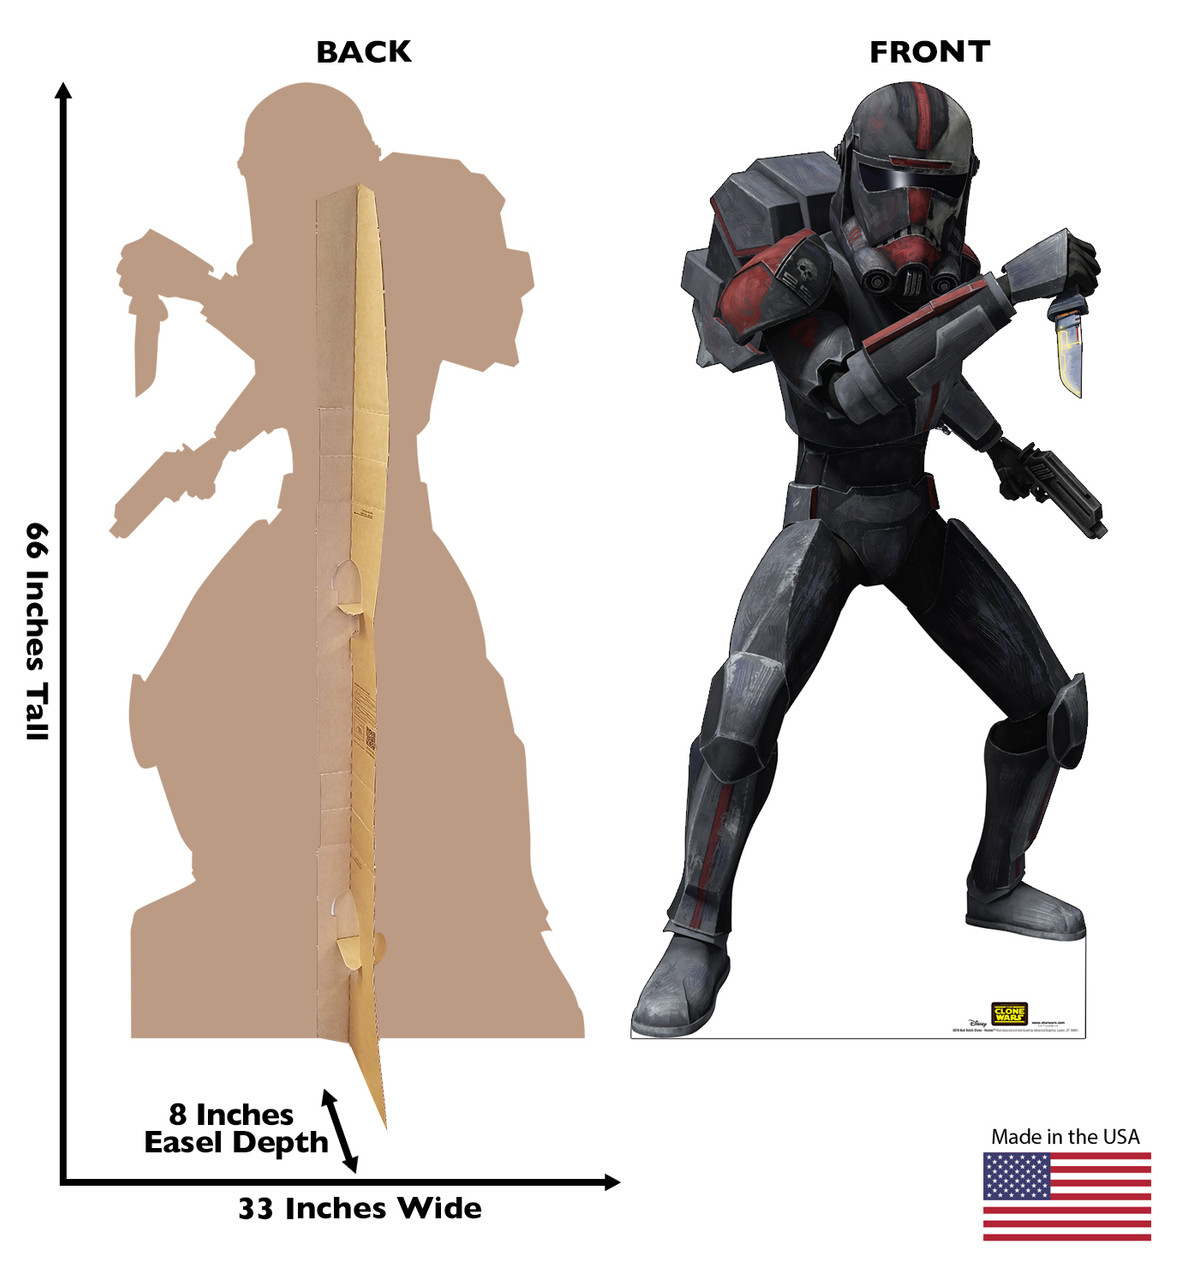 Life-size cardboard standee of the character Bad Batch Clone Hunter from Clone Wars Season 7 with front and back dimensions.